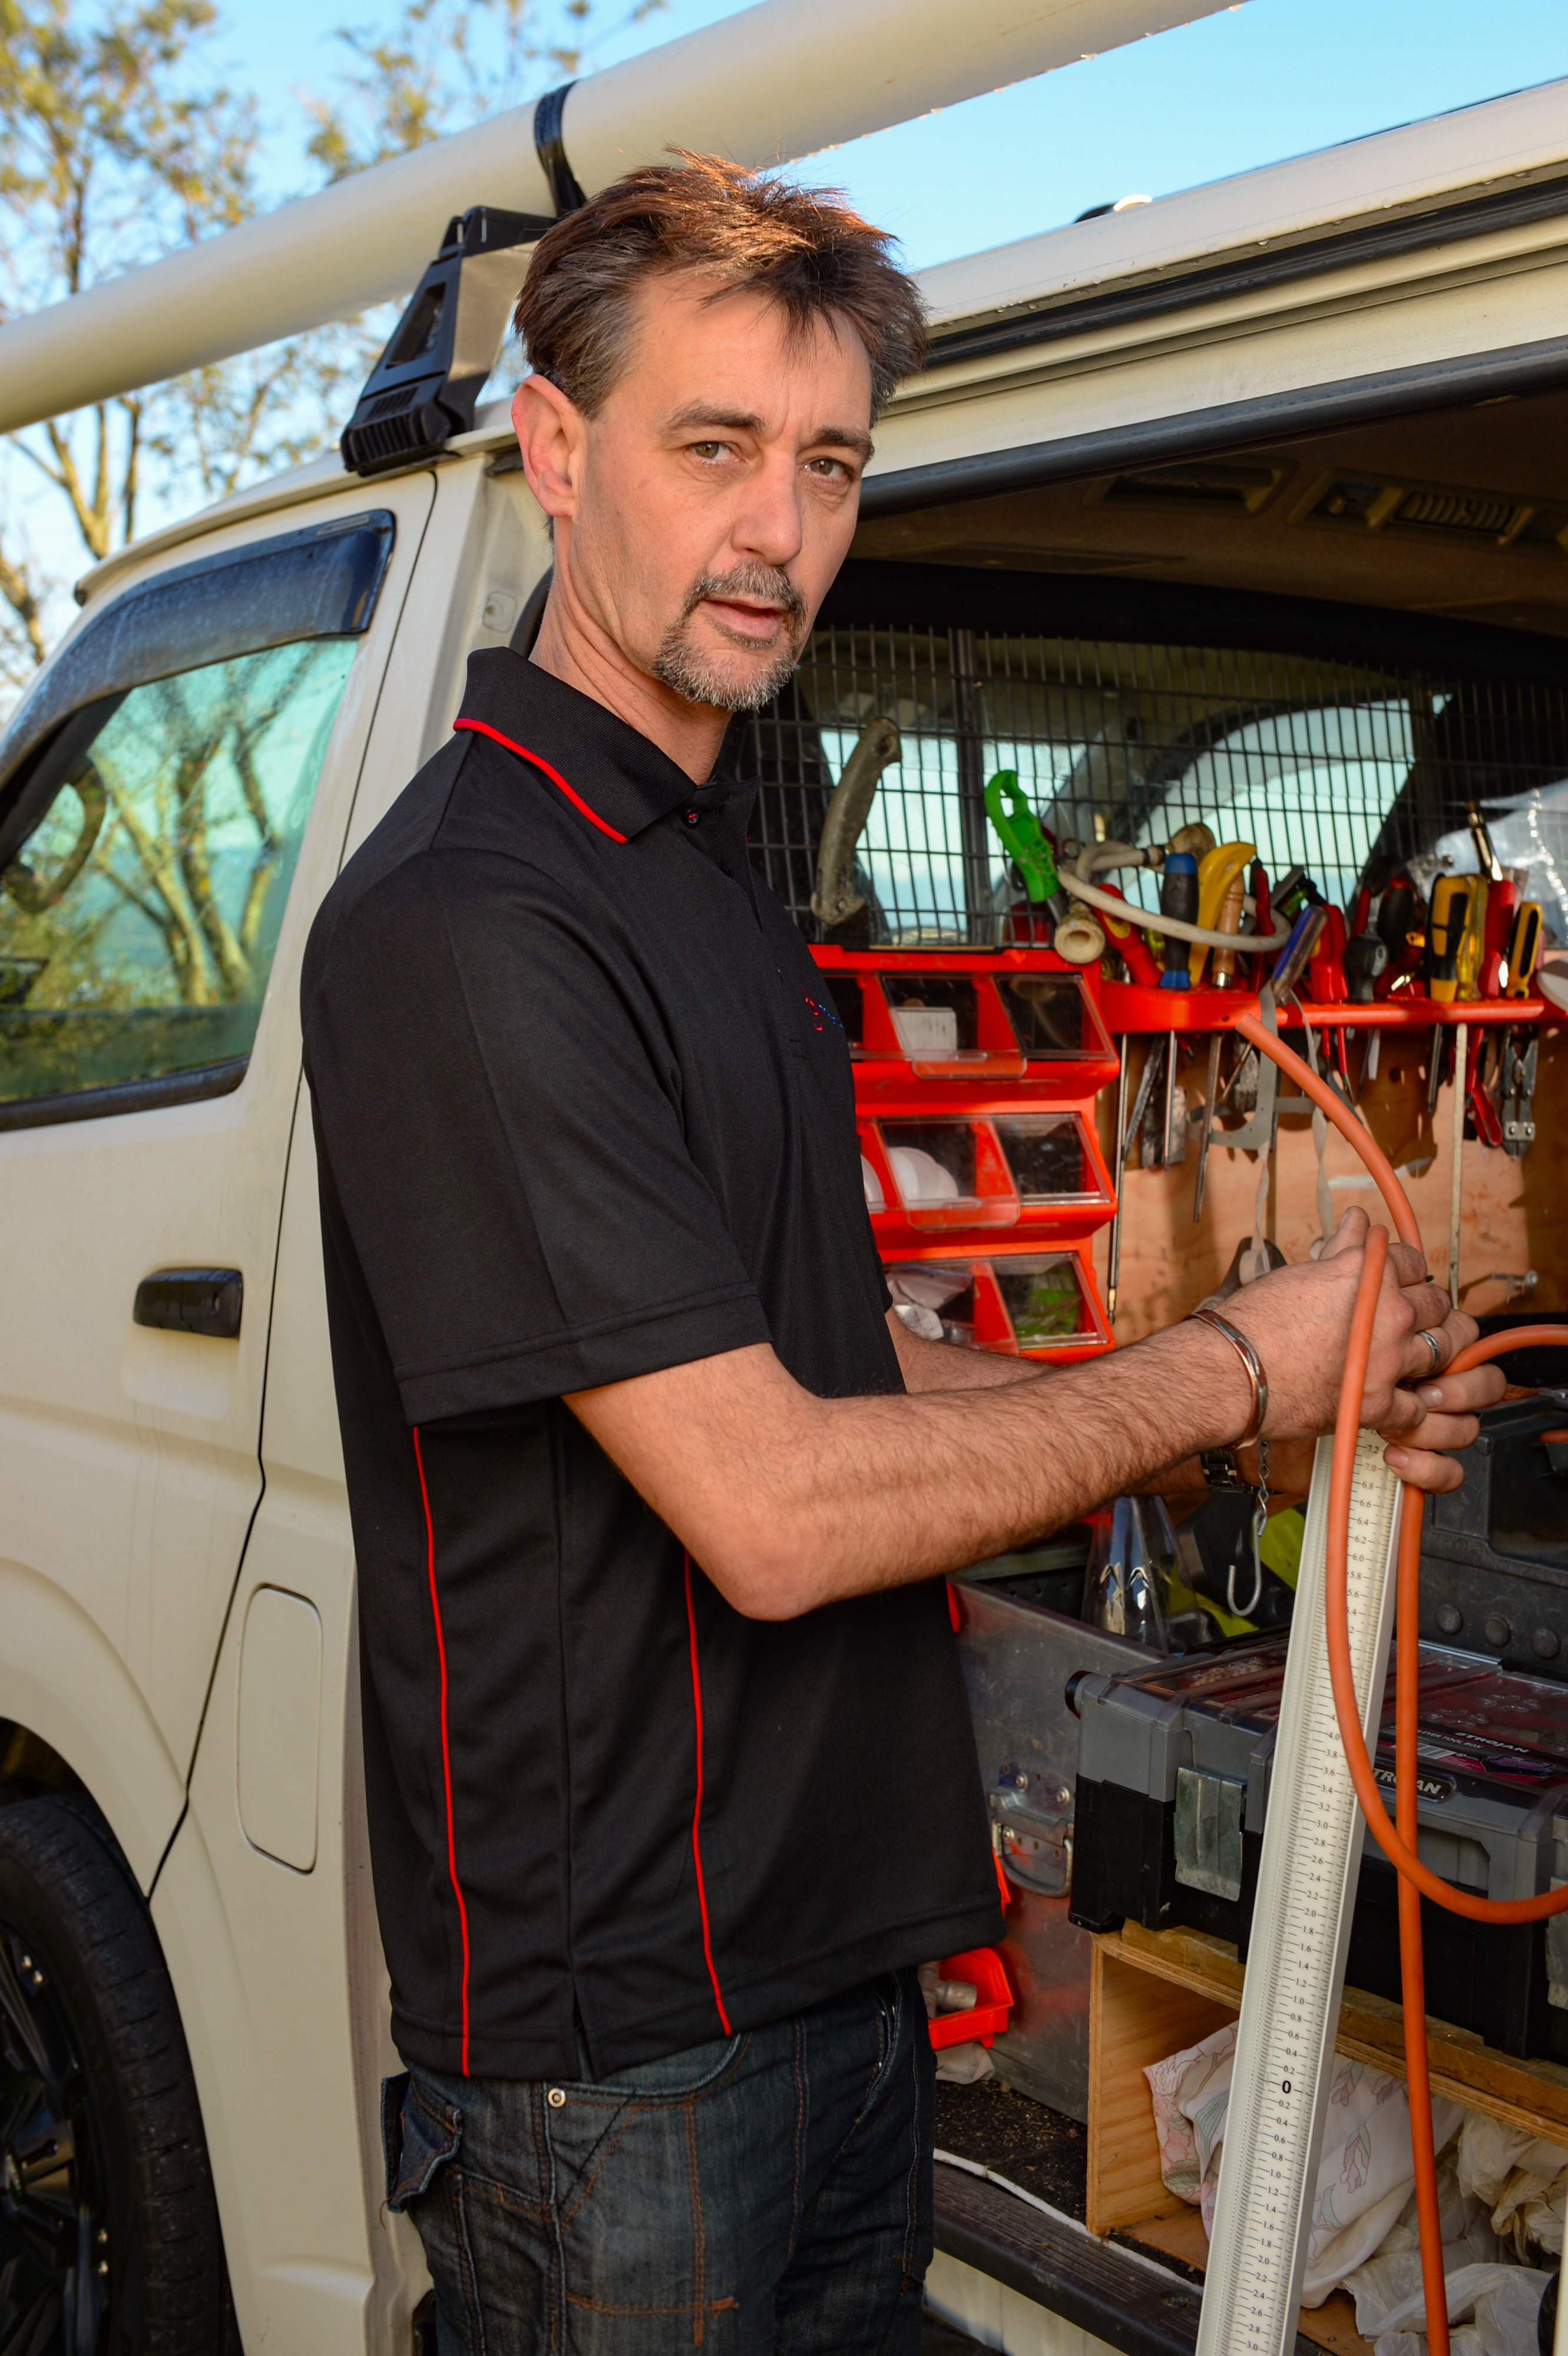 Glen is our leading plumber and gas fitter